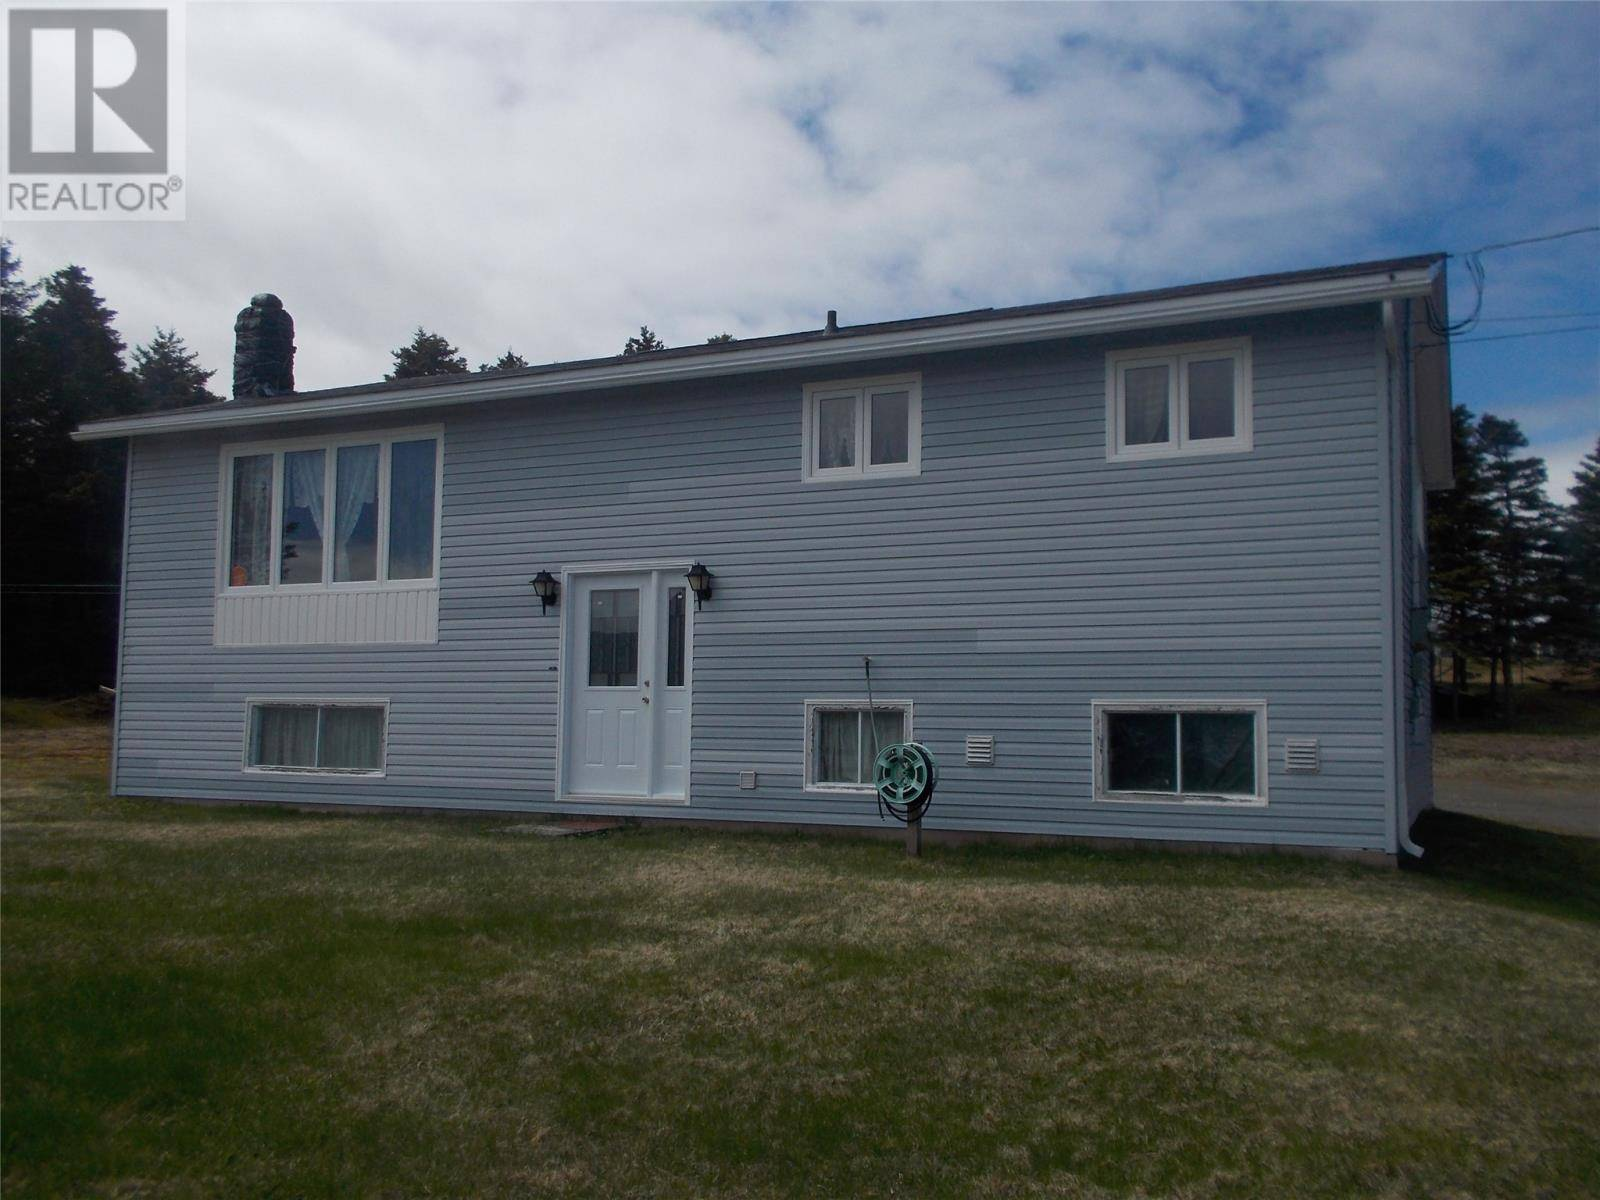 House for sale at 22 Grassy Ln Pouch Cove Newfoundland - MLS: 1192147